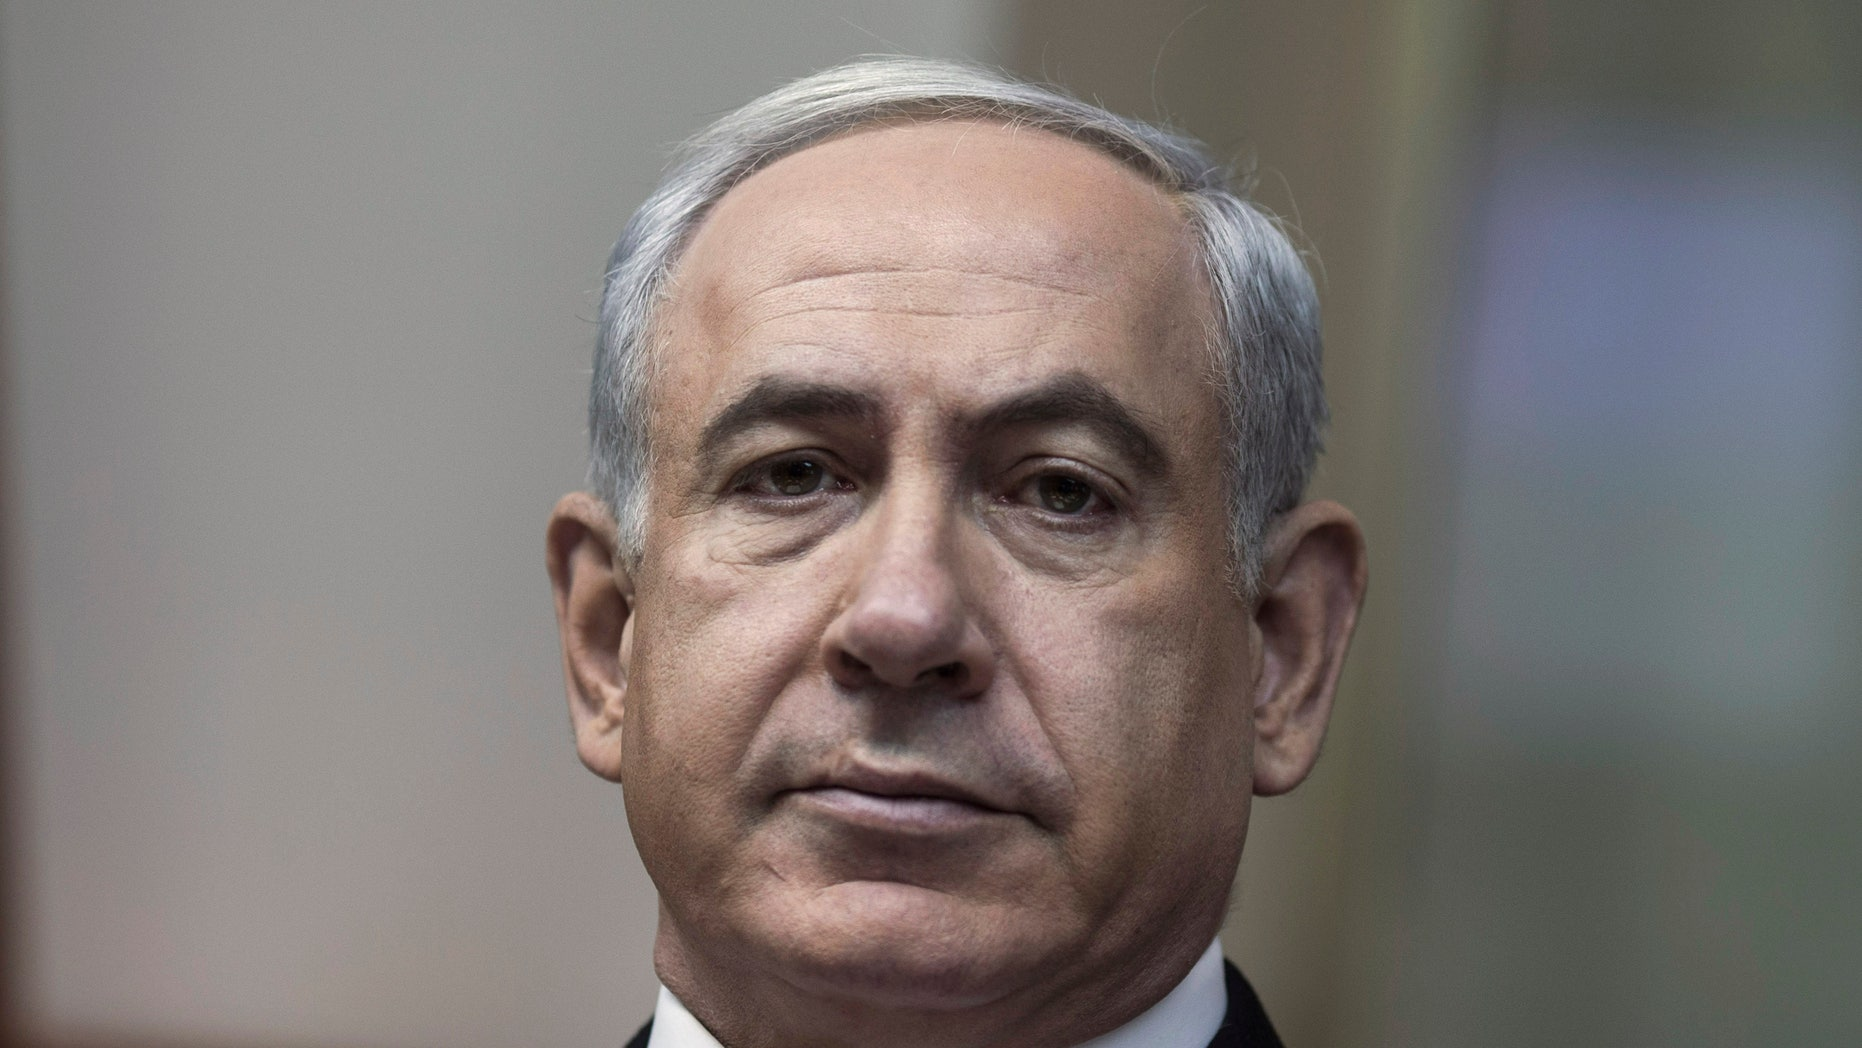 Feb. 3, 2013 - FILE of Israeli Prime Minister Benjamin Netanyahu at his weekly cabinet meeting in his Jerusalem offices.